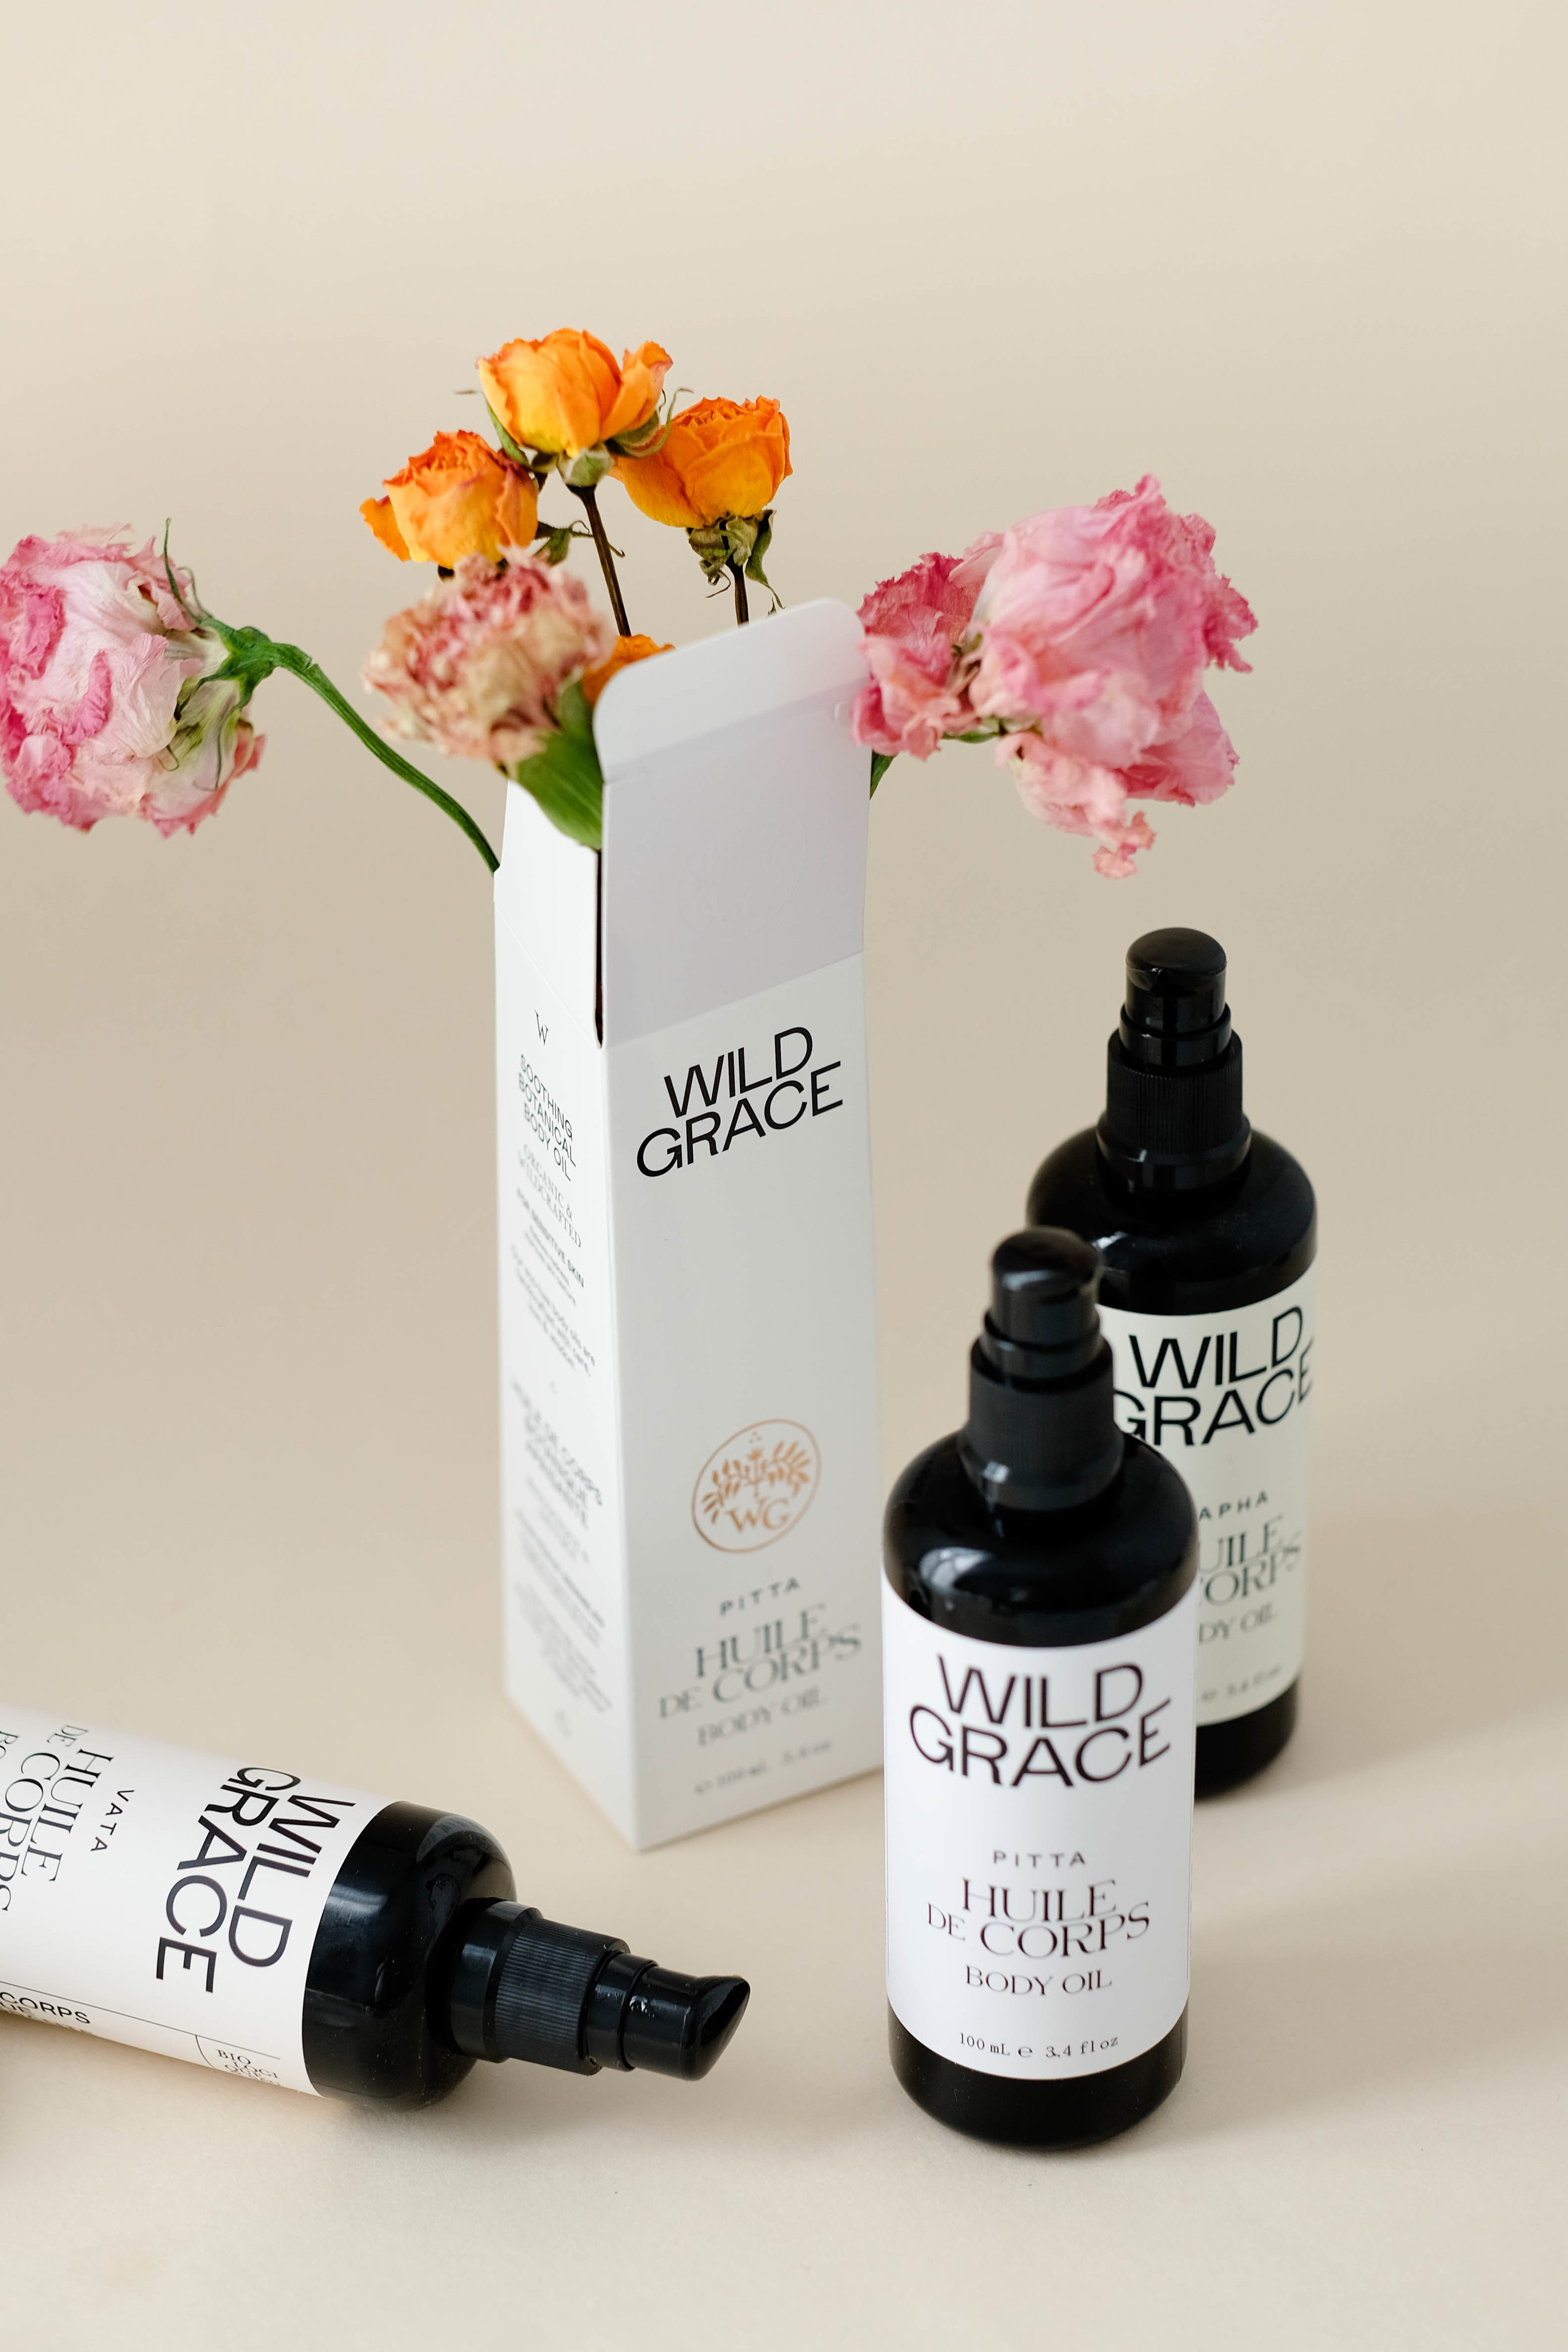 Wild Grace Ayurveda Products OFFER LOTUSBLOOMING15 for 15% OFF